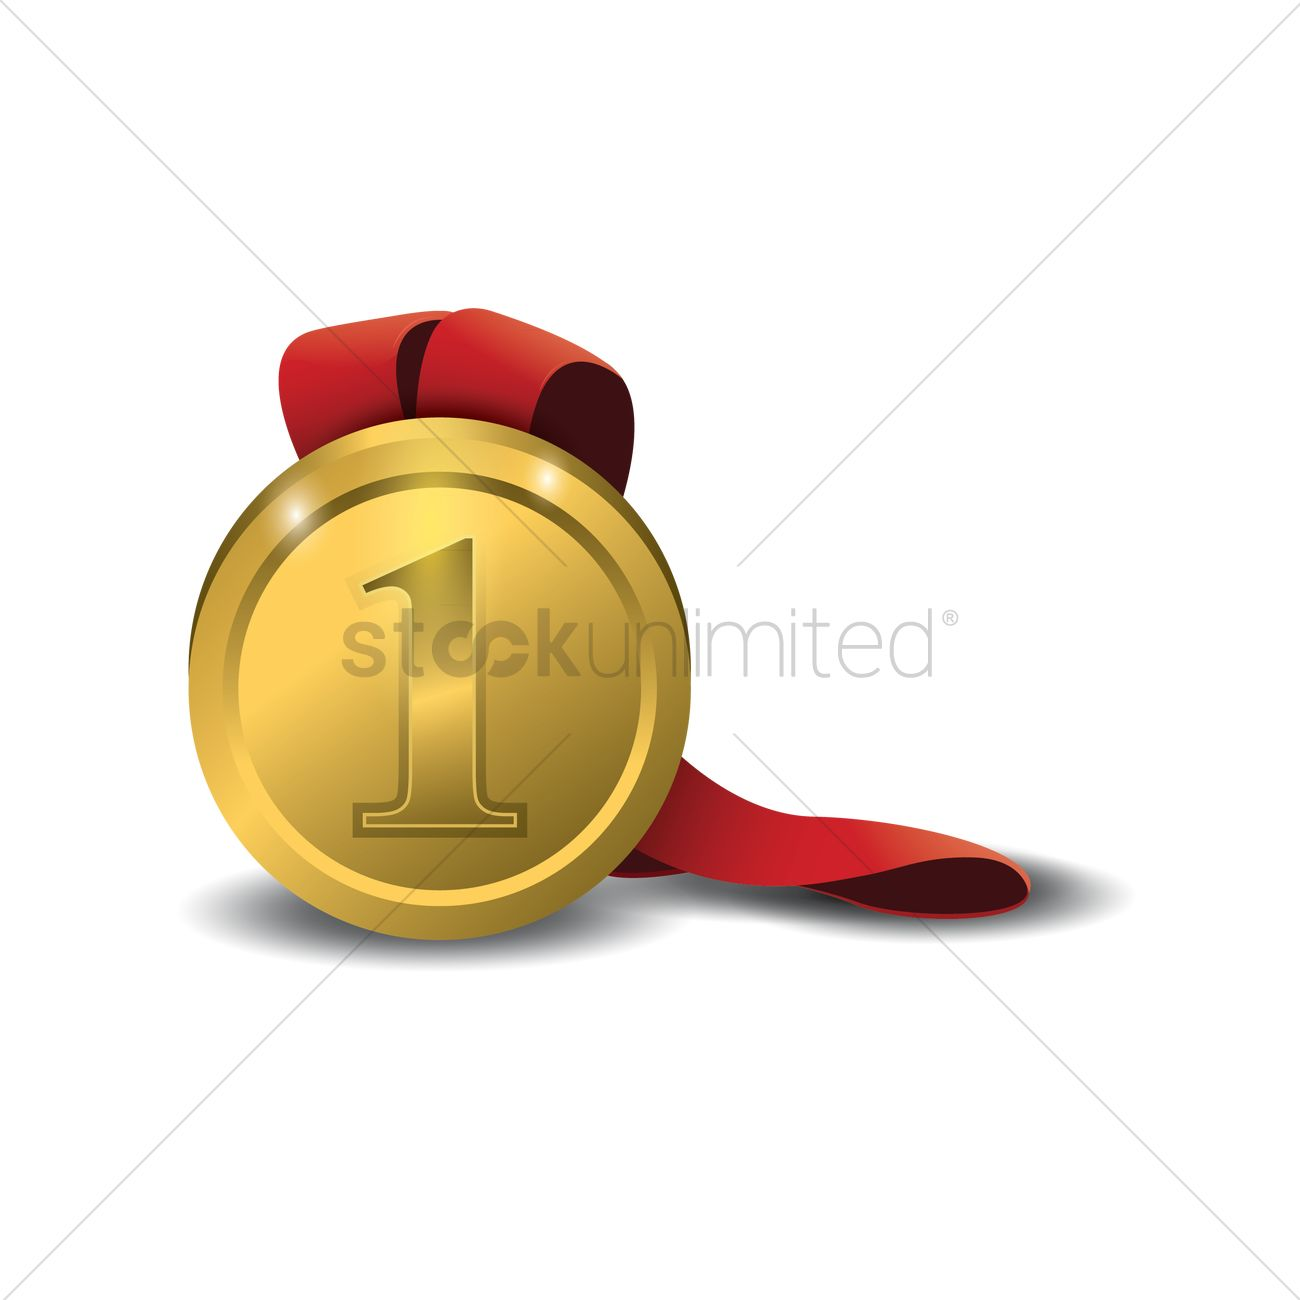 Free First place medal Vector Image - 1438201 | StockUnlimited